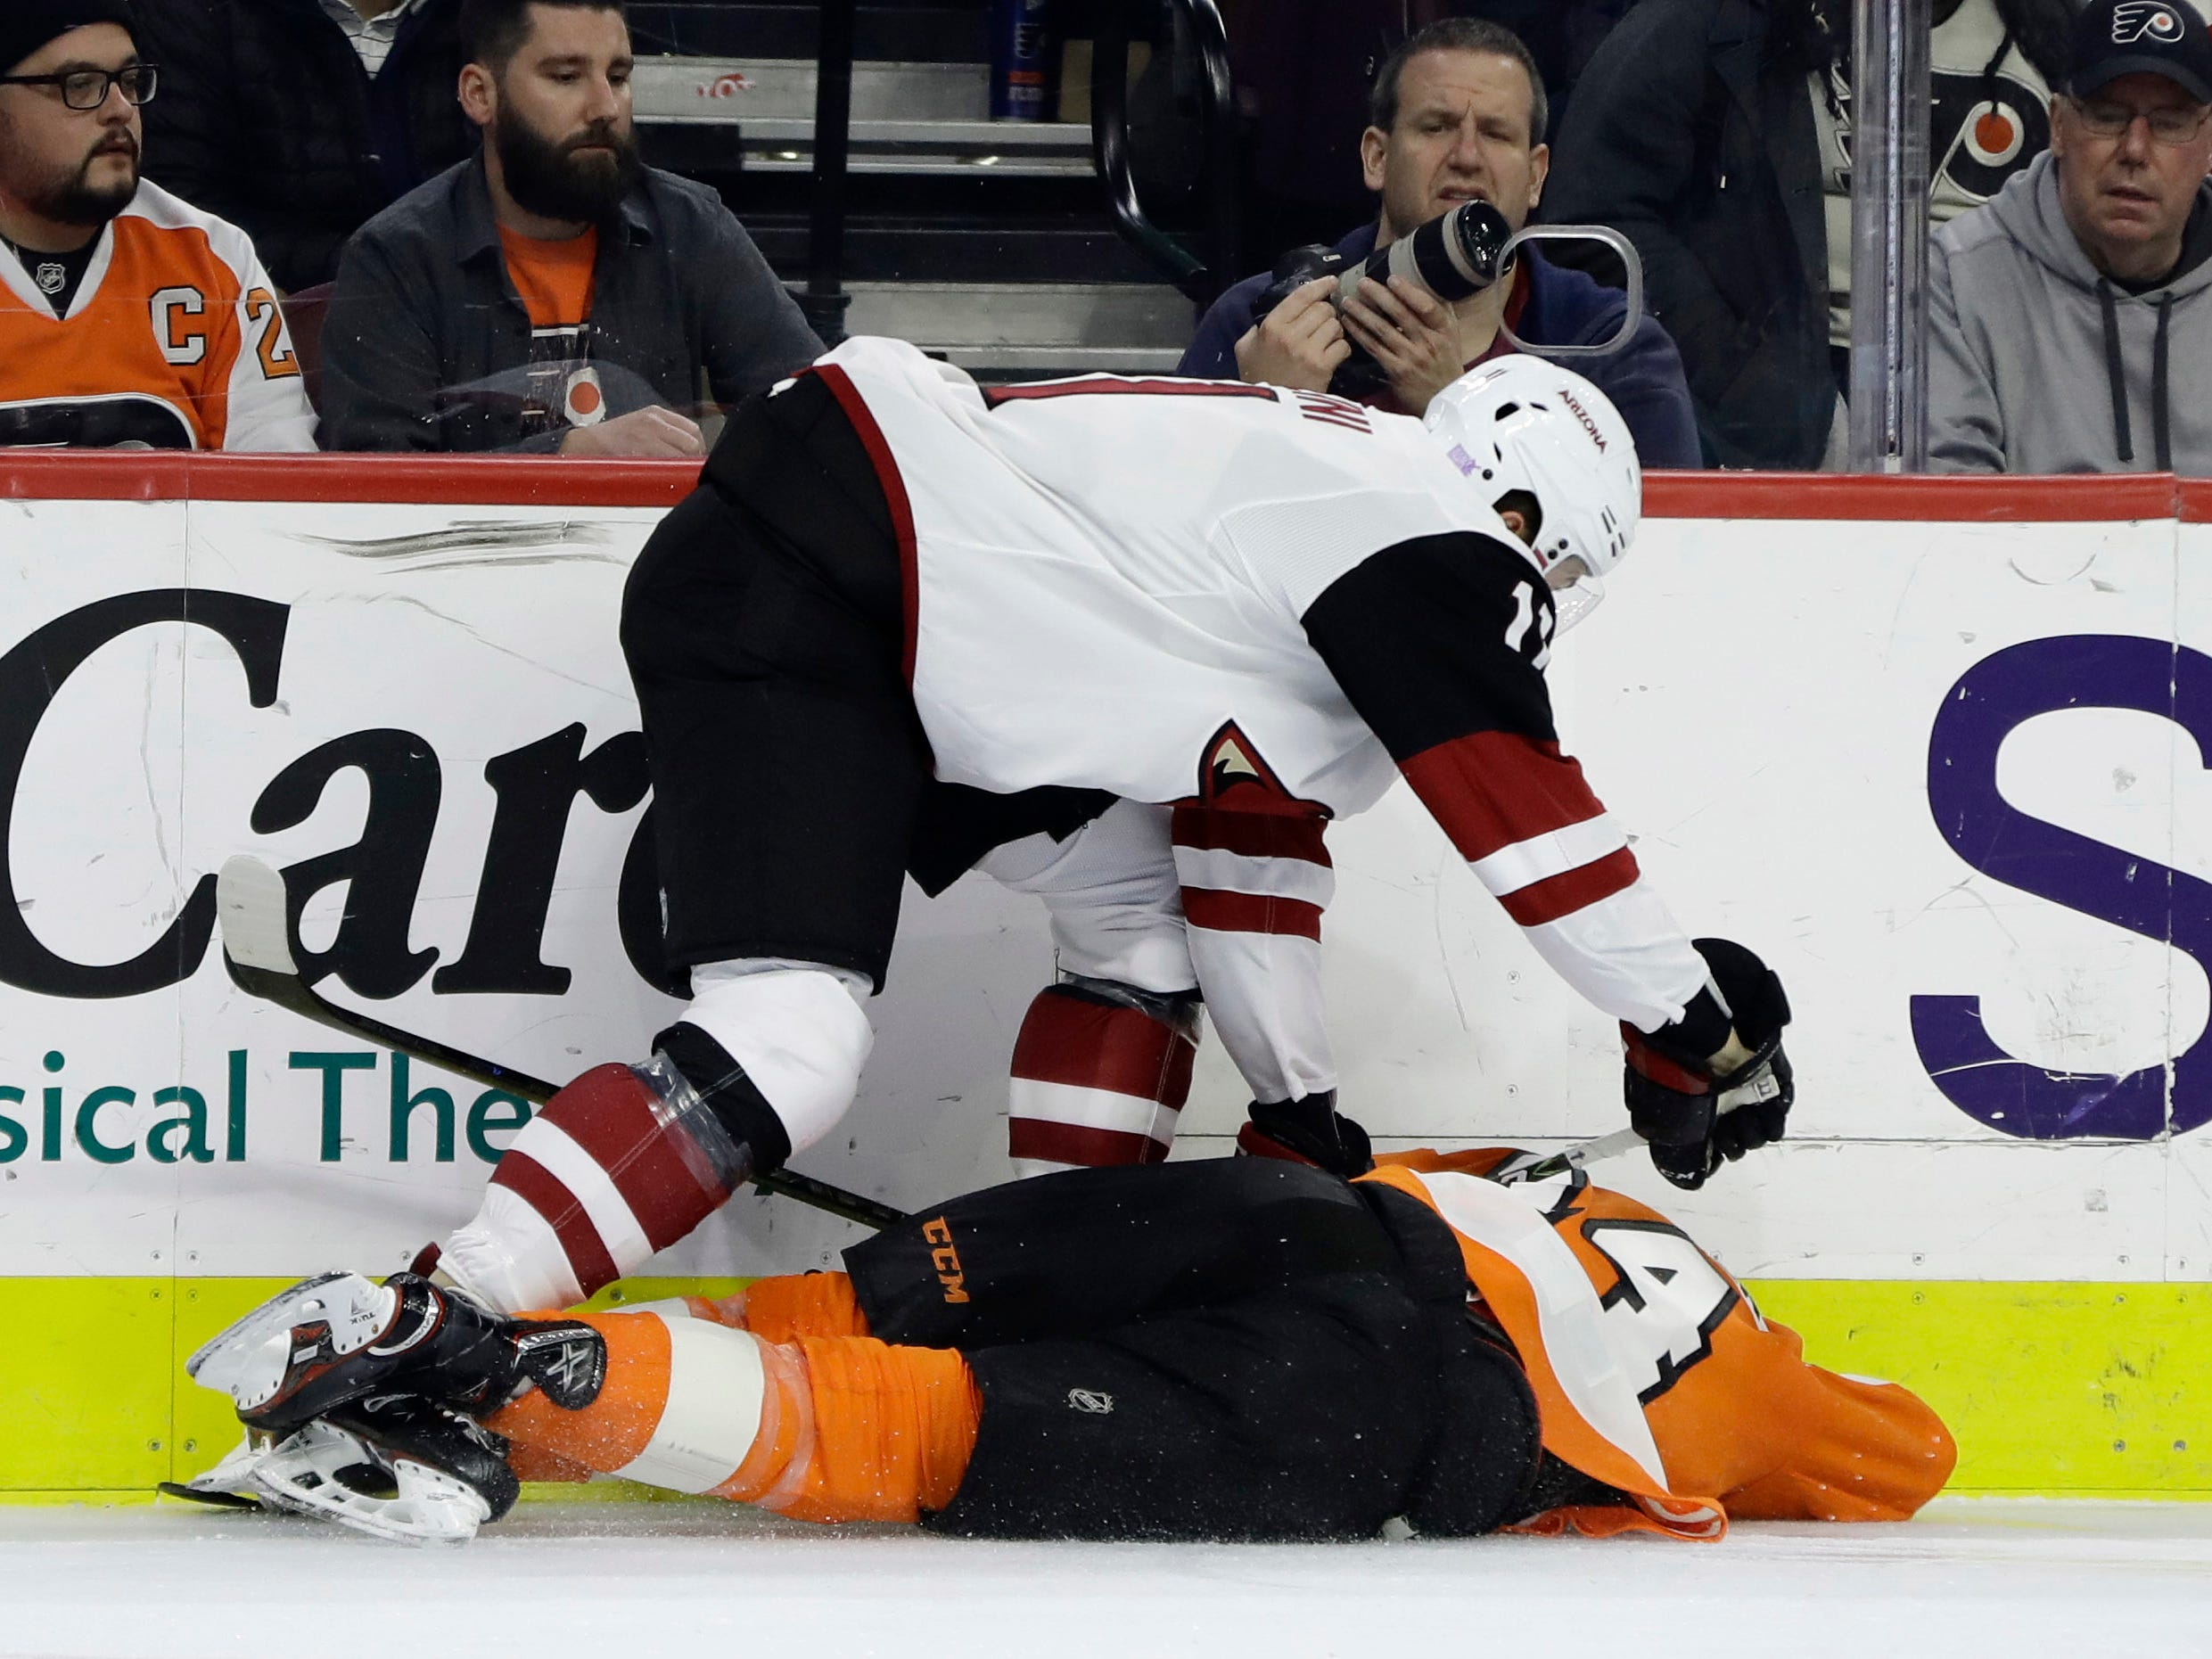 Arizona Coyotes' Brendan Perlini, top, pins Philadelphia Flyers' Sean Couturier to the ice during the second period of an NHL hockey game, Thursday, Nov. 8, 2018, in Philadelphia. (AP Photo/Matt Slocum)